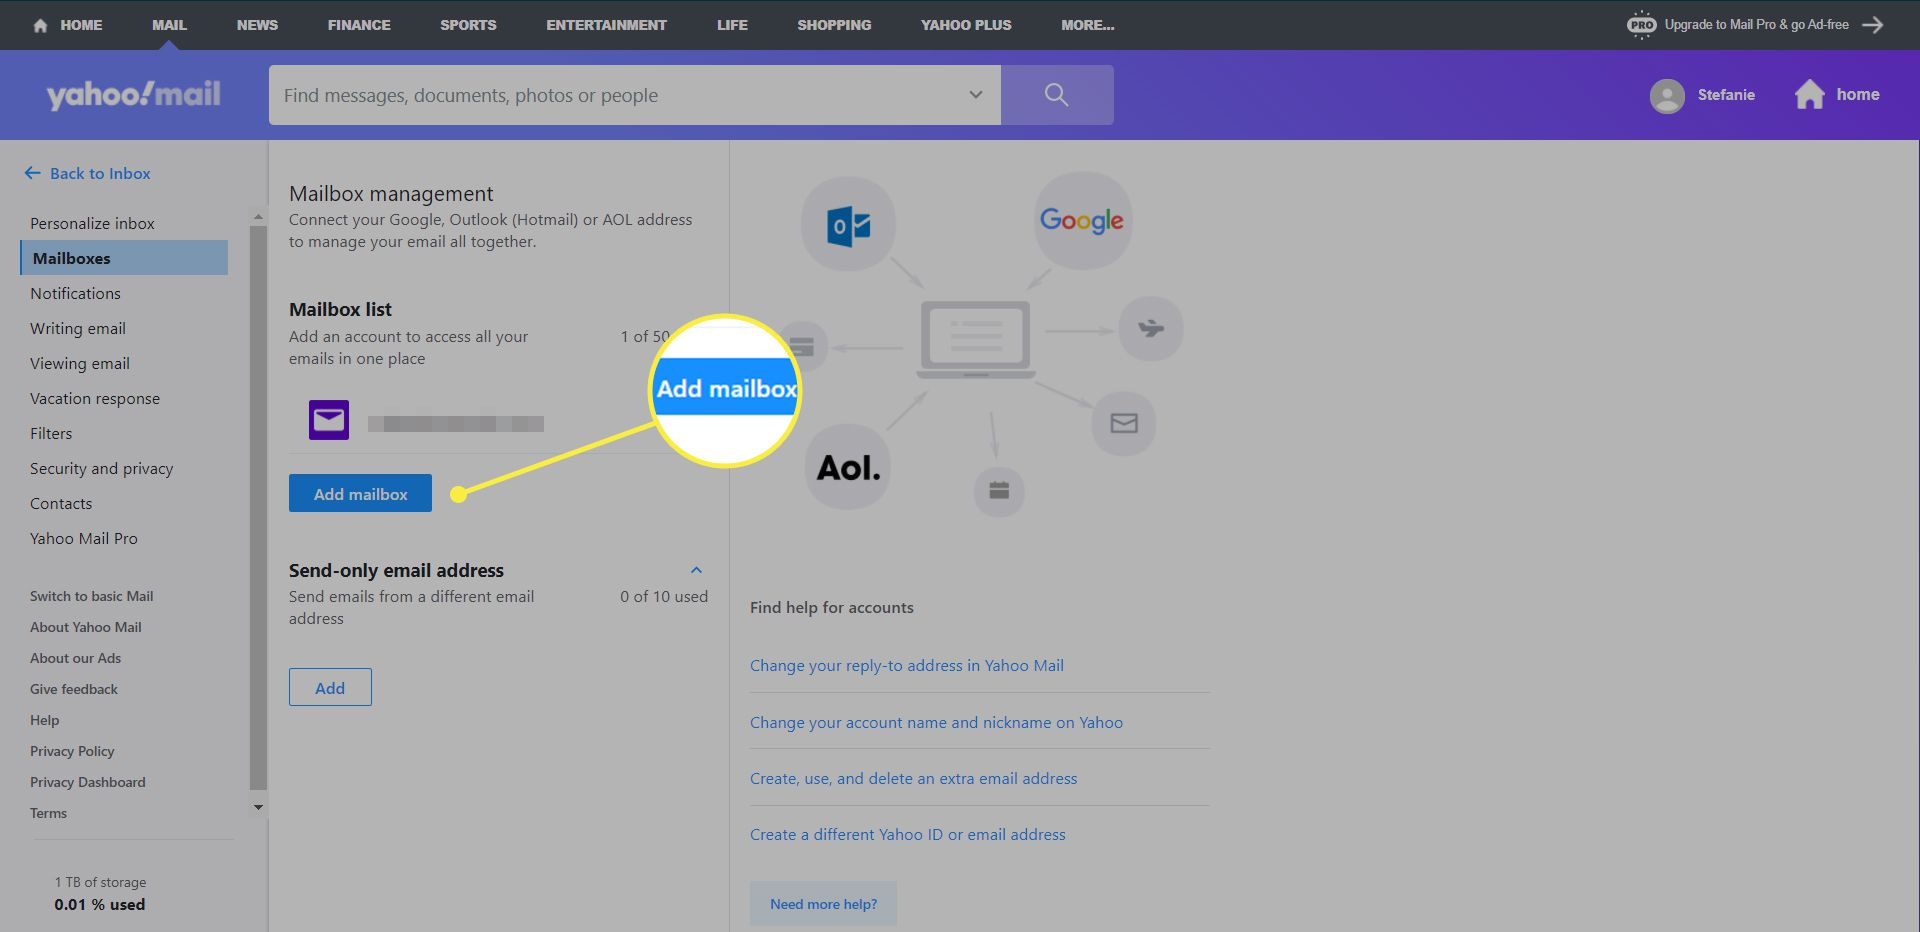 Yahoo Mail settings with 'Add Mailbox' highlighted